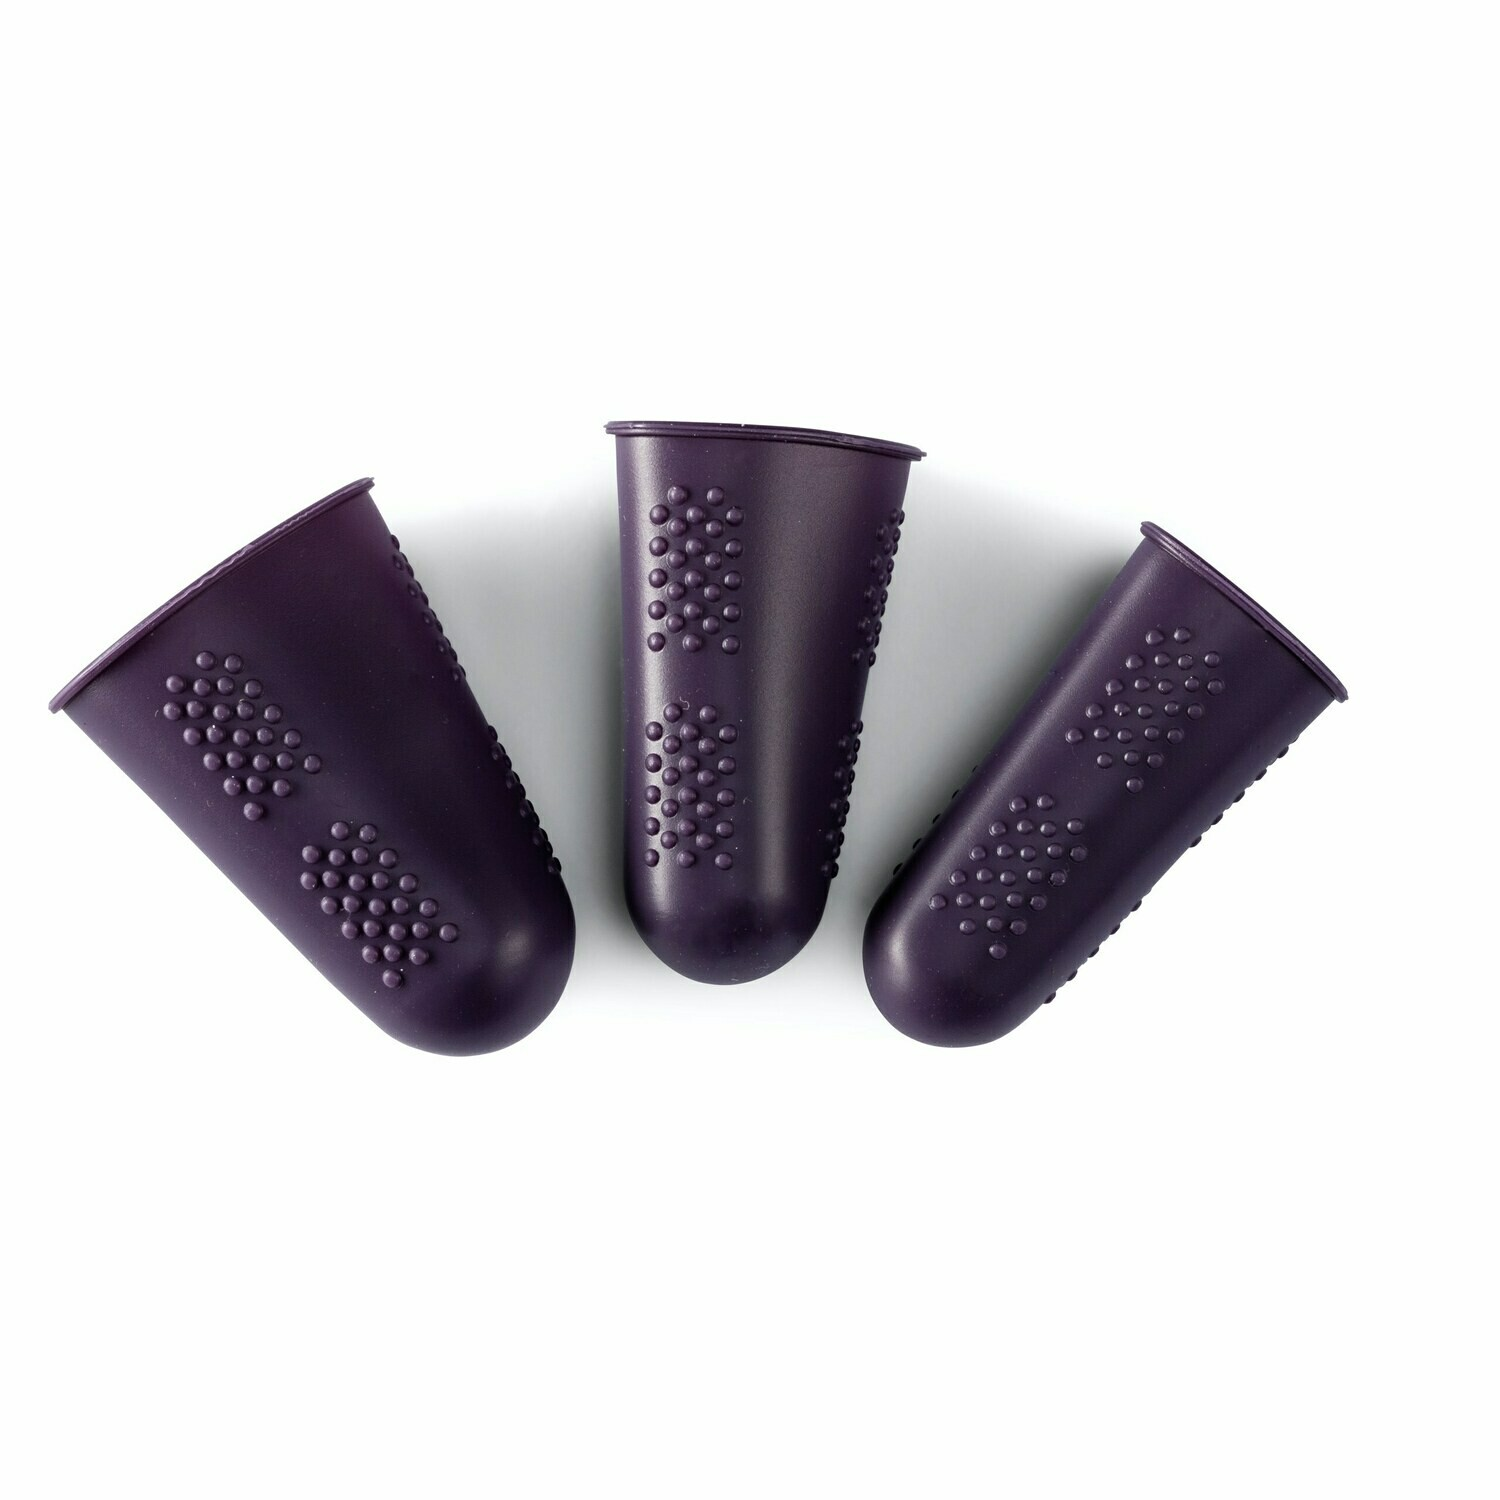 Prym silicone finger guards 3 pieces